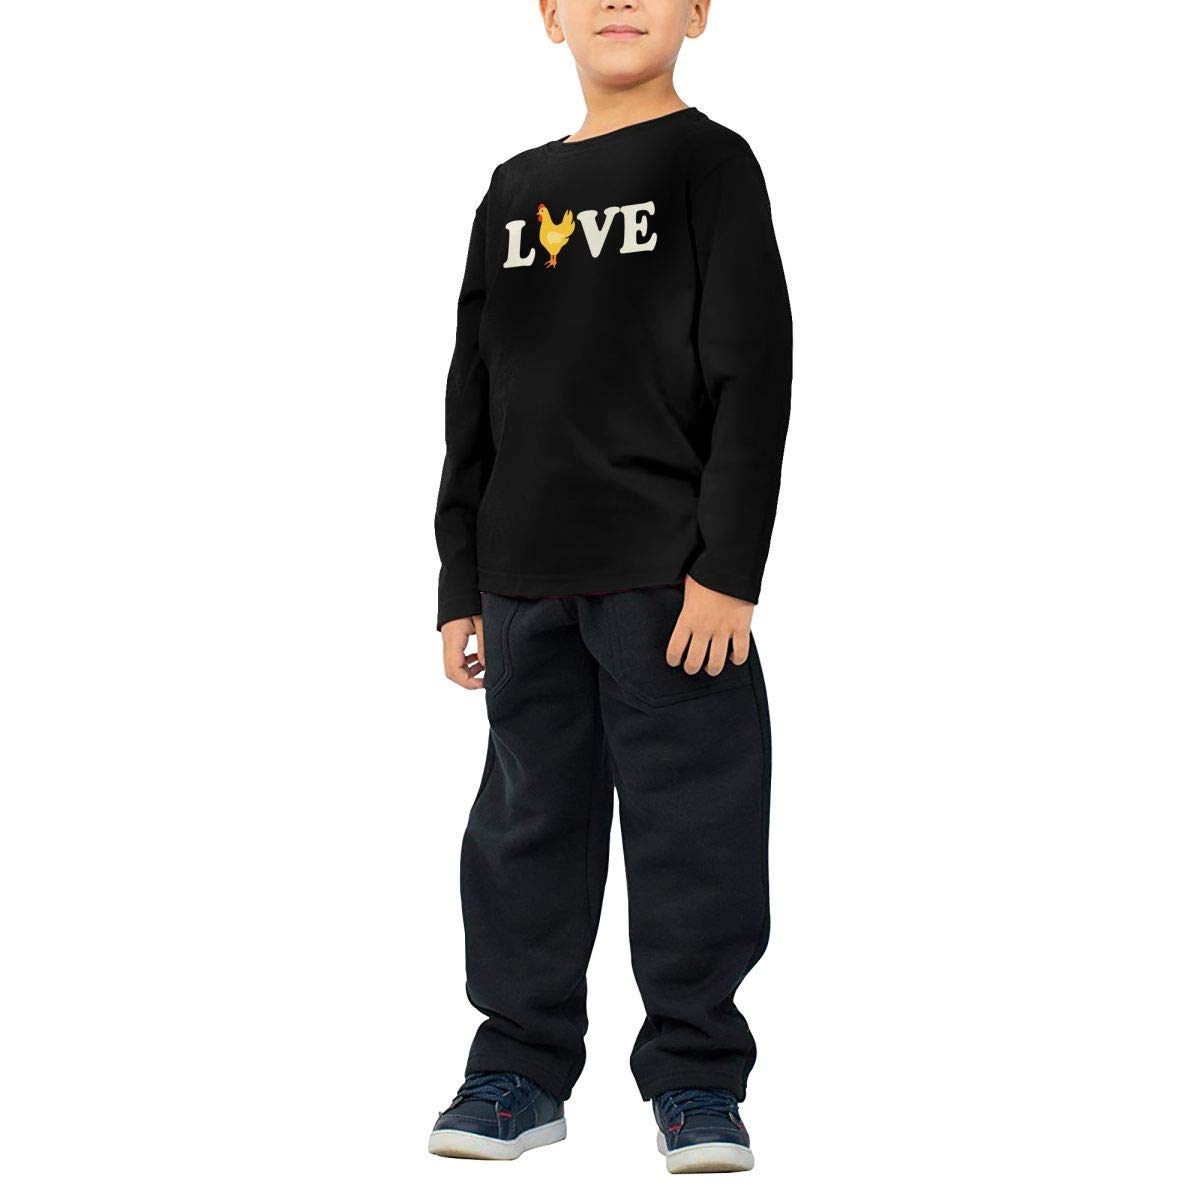 Love Chickens Kids Boys Girls O-Neck Long Sleeve Shirt Tee for Toddlers